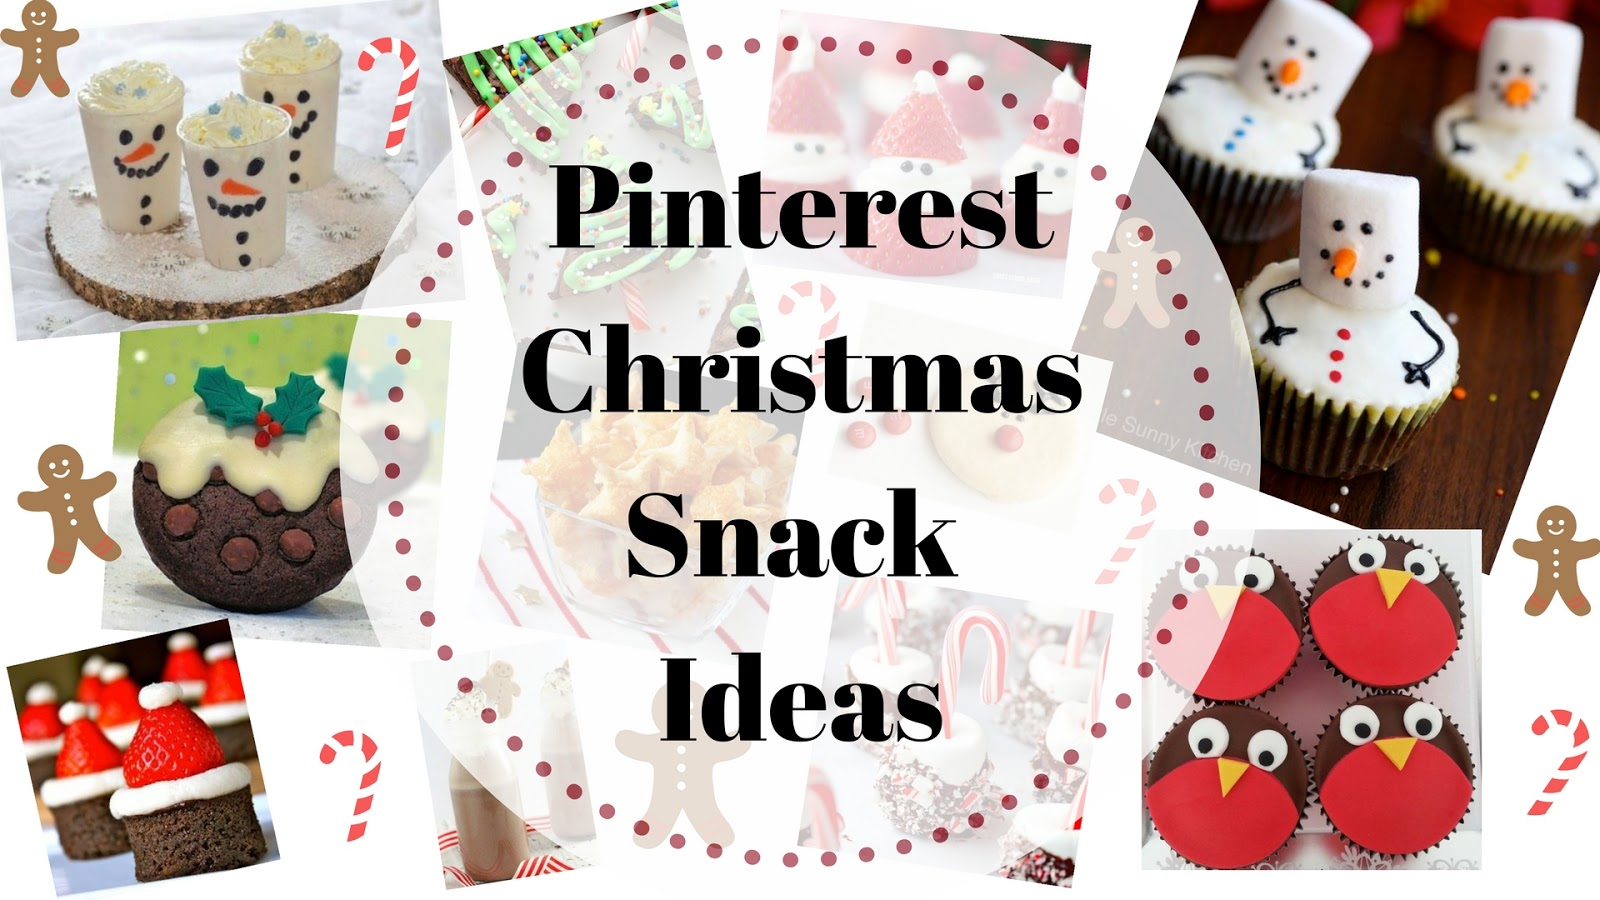 Pinterest Christmas Snack Ideas